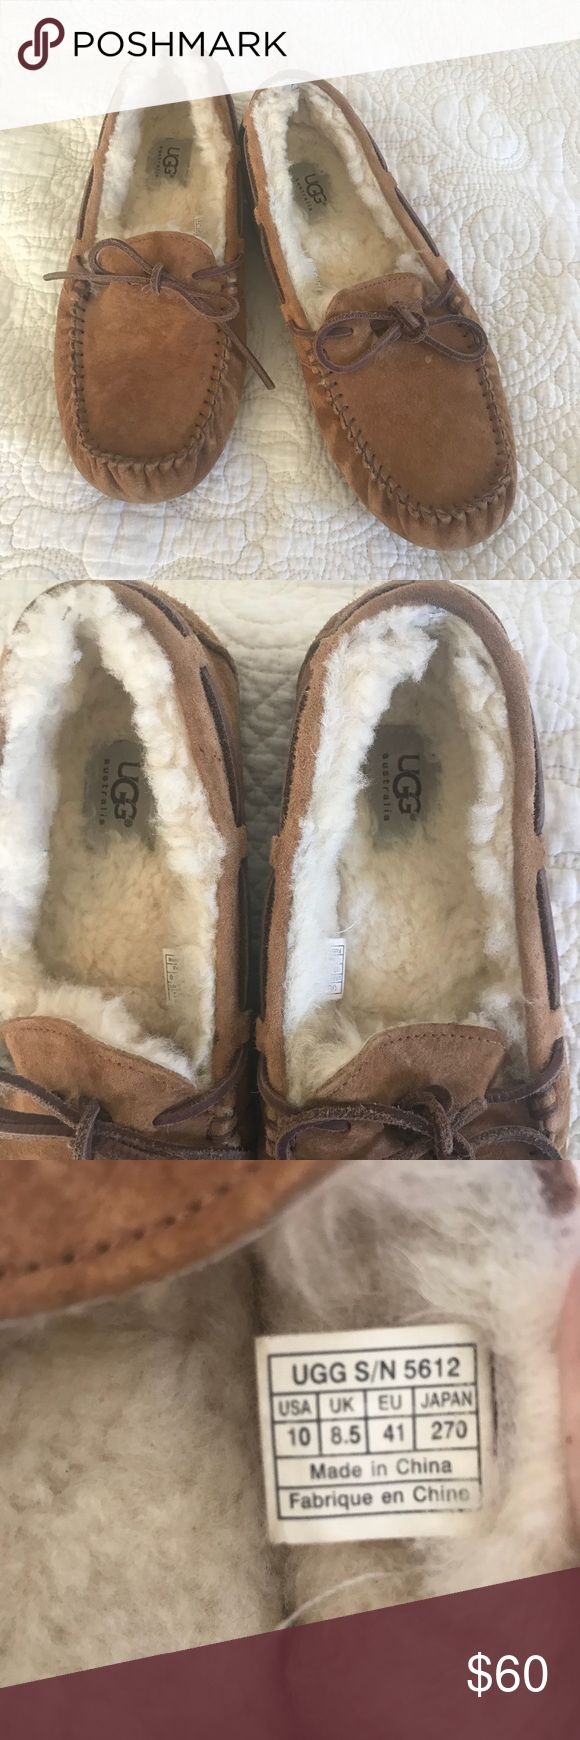 UGG Sheepskin Slipper Moccasins In Chestnut Authentic UGG slip-ons. Extremely comfortable! Women's size 10. They have been worn very few times, but never outside. In excellent condition. UGG Shoes Moccasins